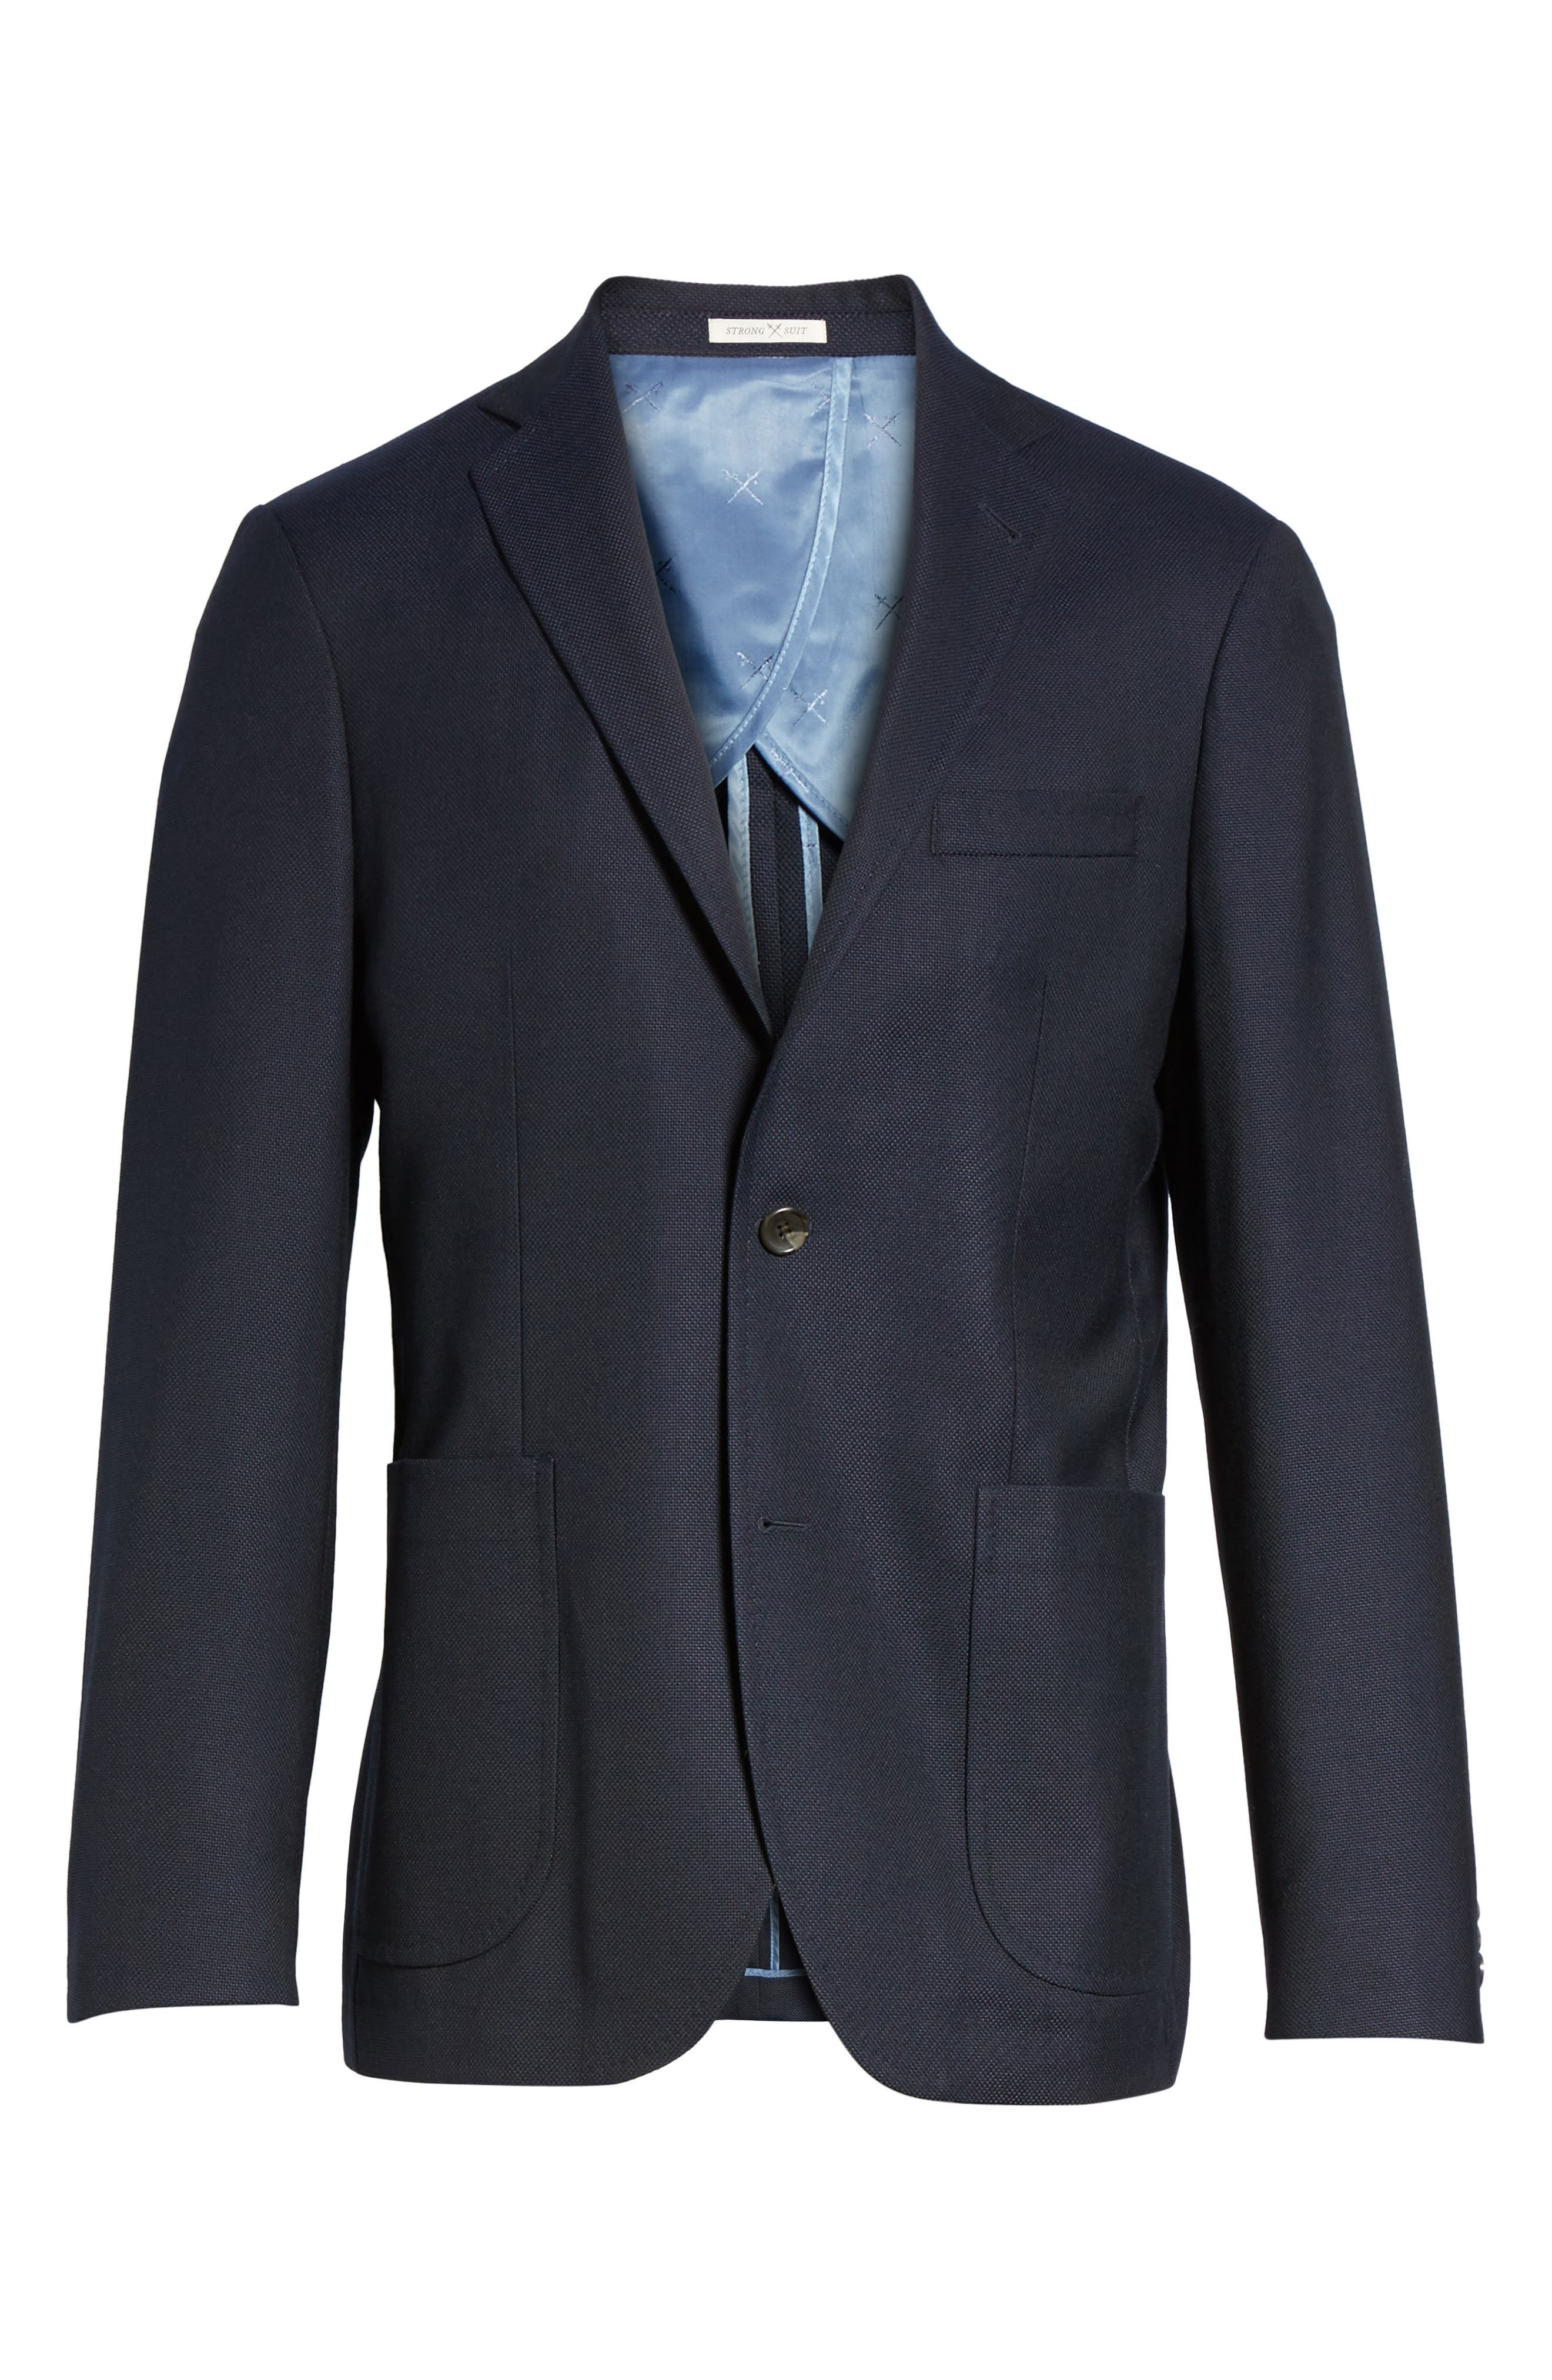 Vantage Trim Fit Wool Blazer,                             Alternate thumbnail 6, color,                             Navy Hopsack